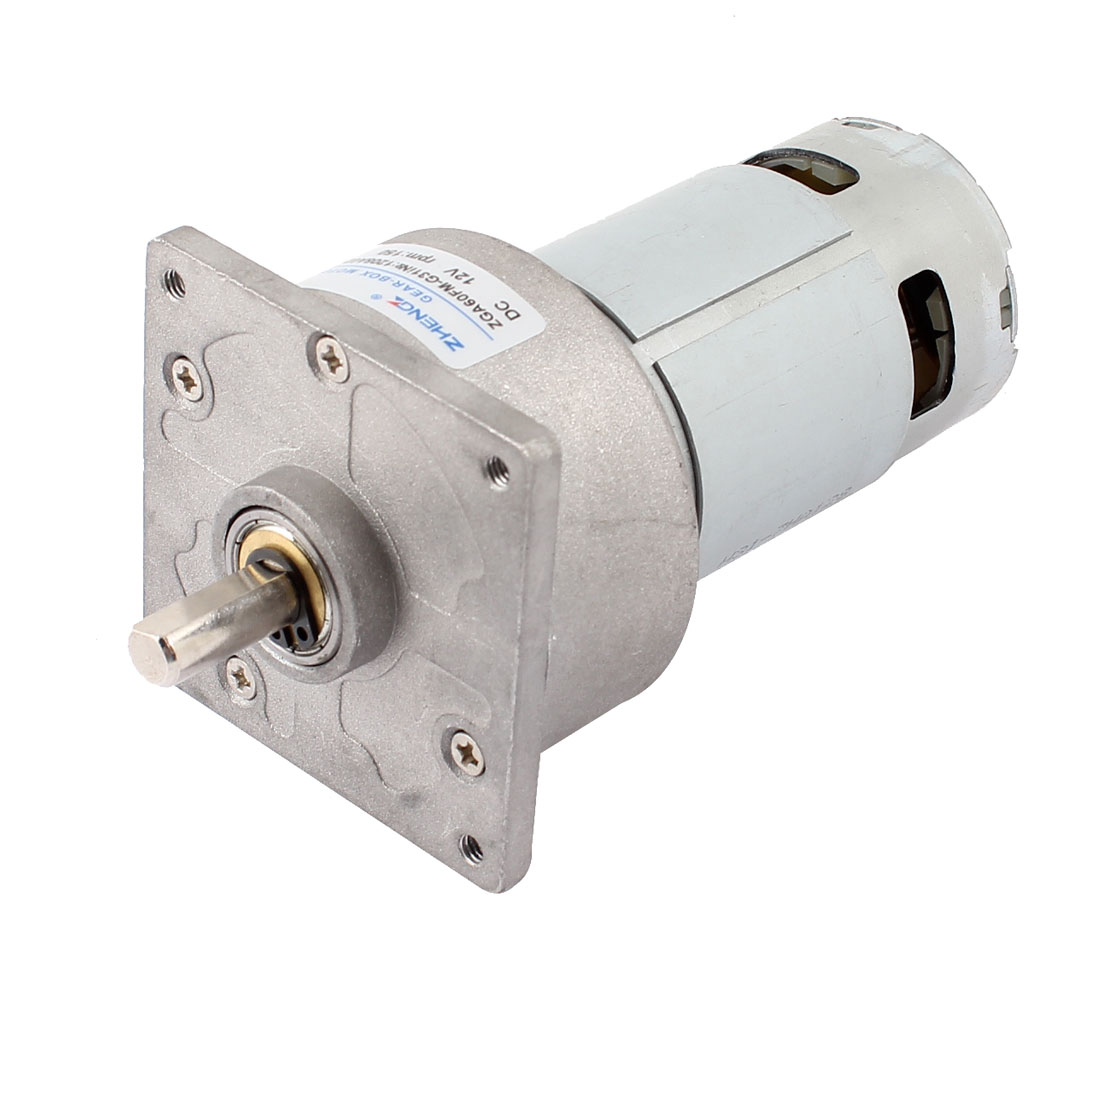 DC 12V 4600r/Min Flange Mounted Speed Reduce Magnetic Electric Geared Motor